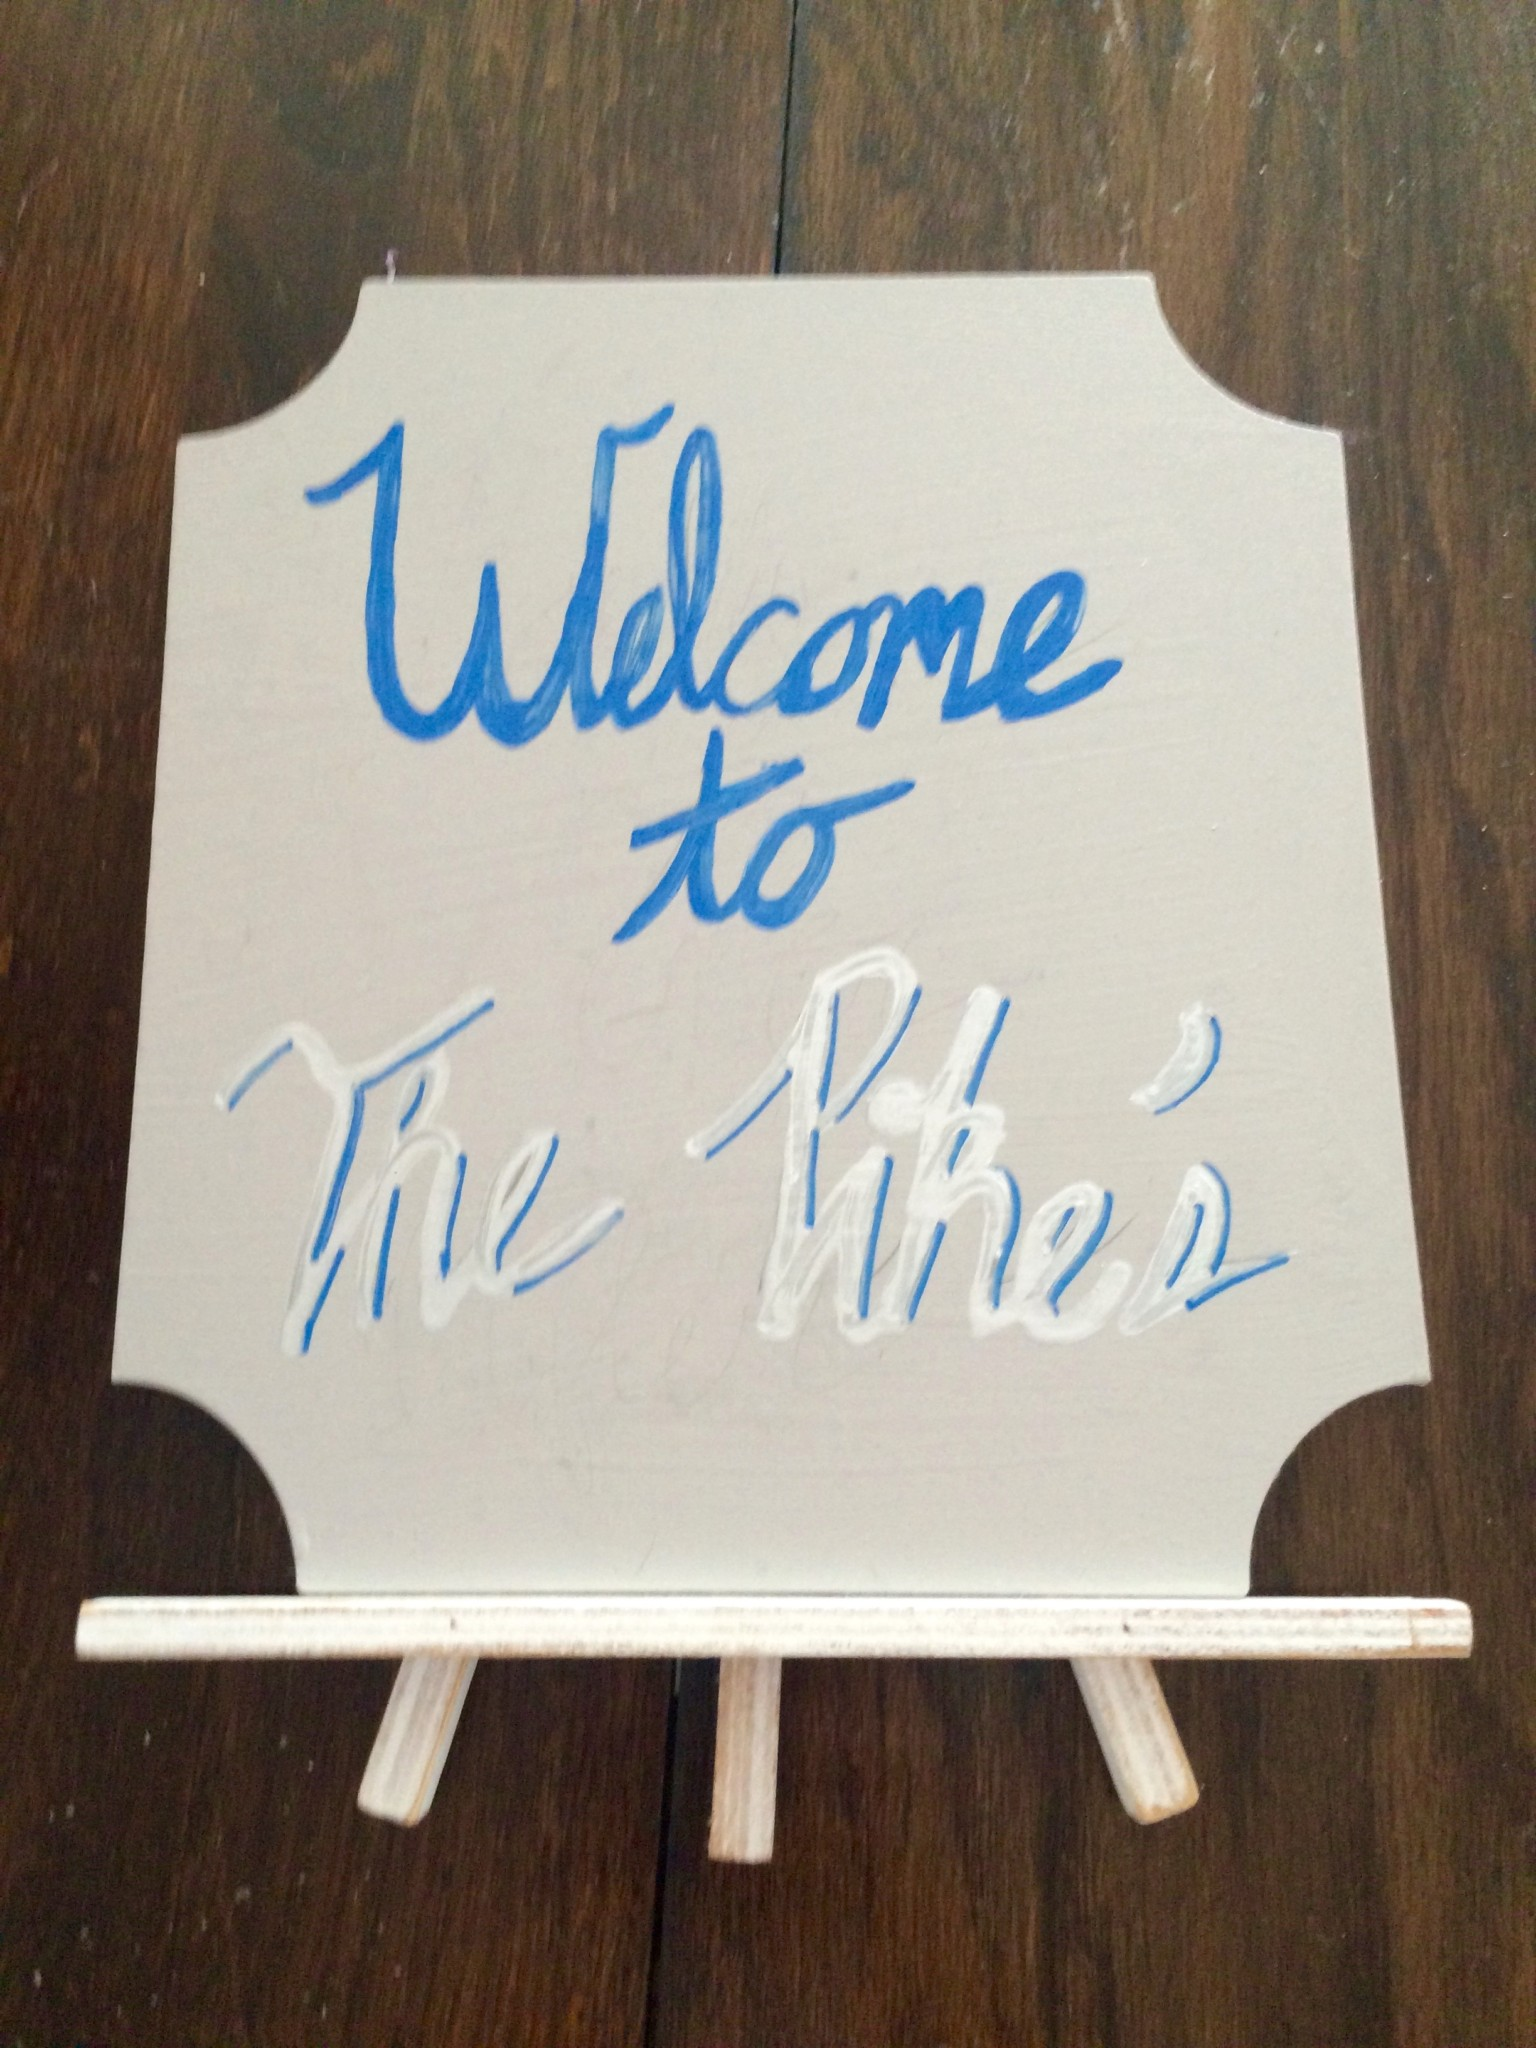 The Before Photo for a DIY Welcome Sign for Home Entryway Using a Cricut Die Machine and Vinyl